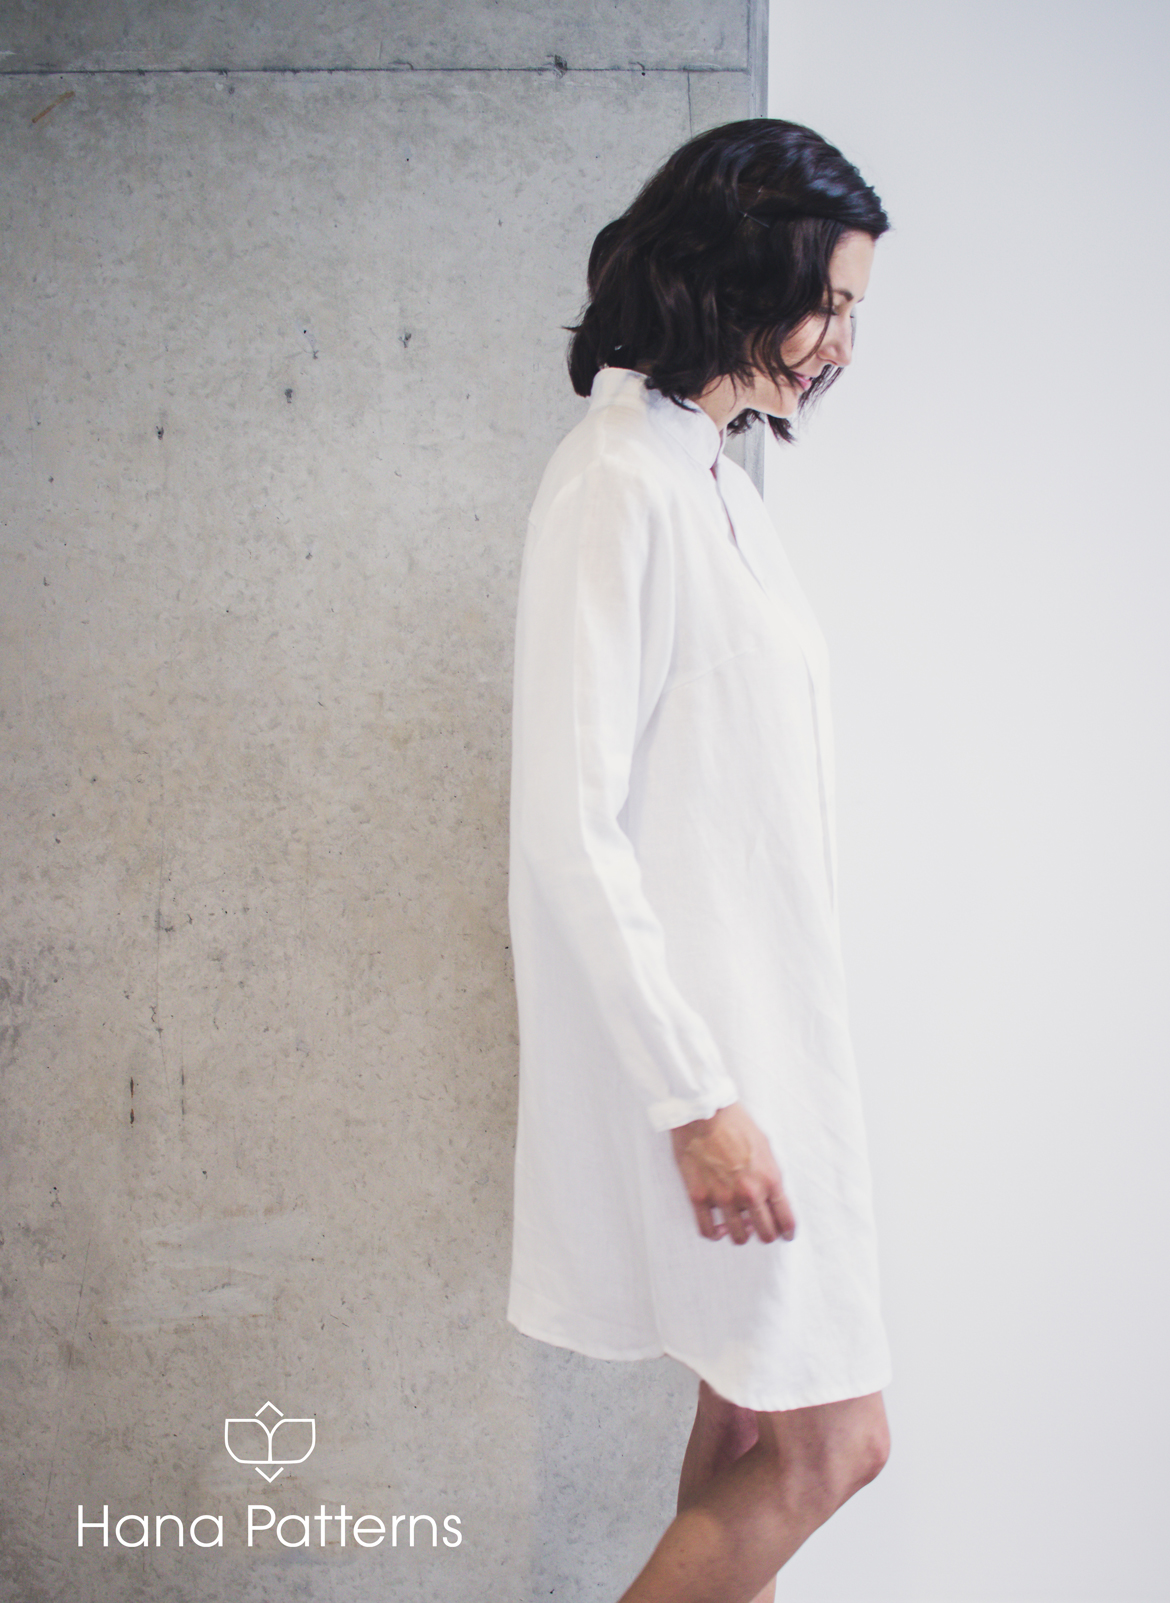 HAIKU Mandarin Collar Shirt Dress Sewing Pattern by Hana Patterns | A modern take on the mandarin collar. Beautiful and effortless in linen. Sewing pattern is available in sizes US 2 to 24. Go to www.hanapatterns.com for more minimalist fashion sewing patterns. #hanapatterns